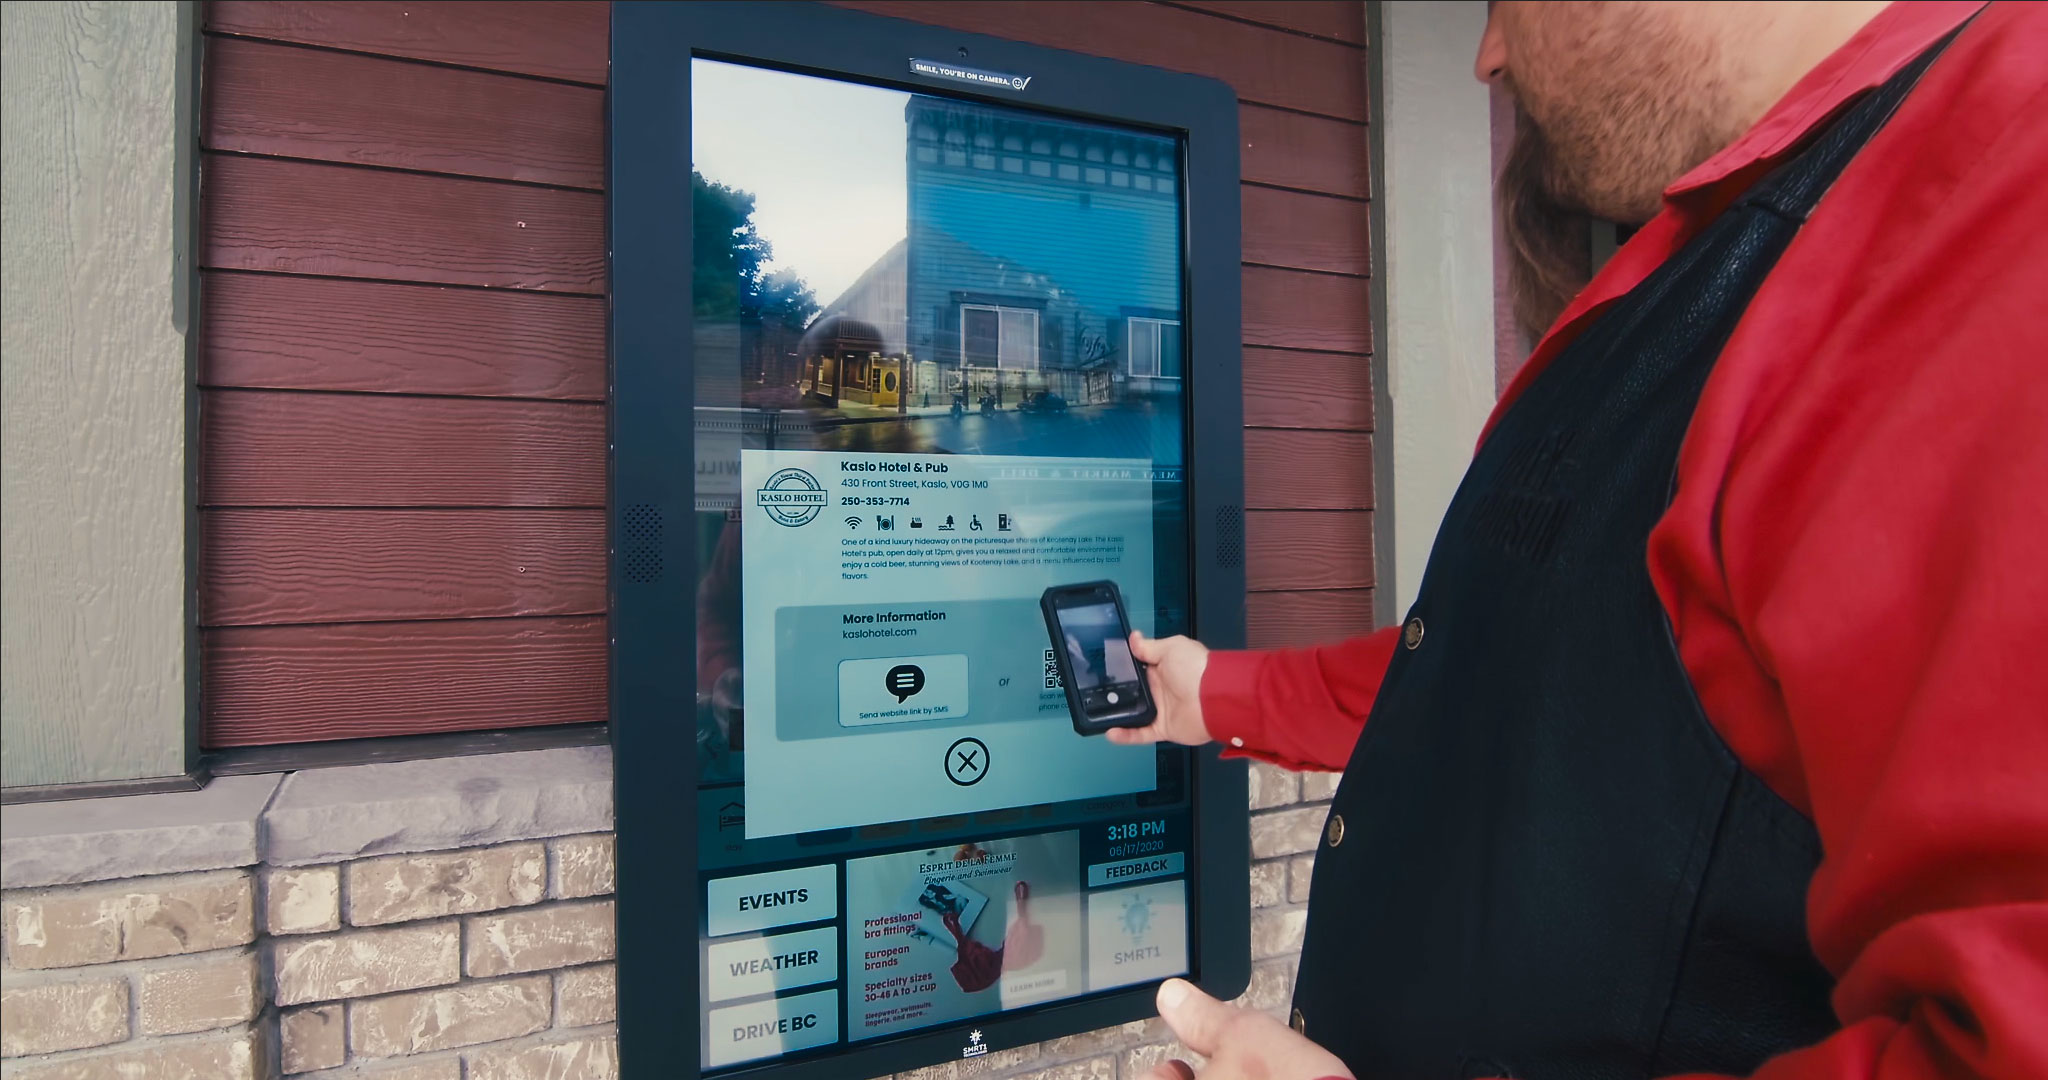 Are smart vending machines safe to use?